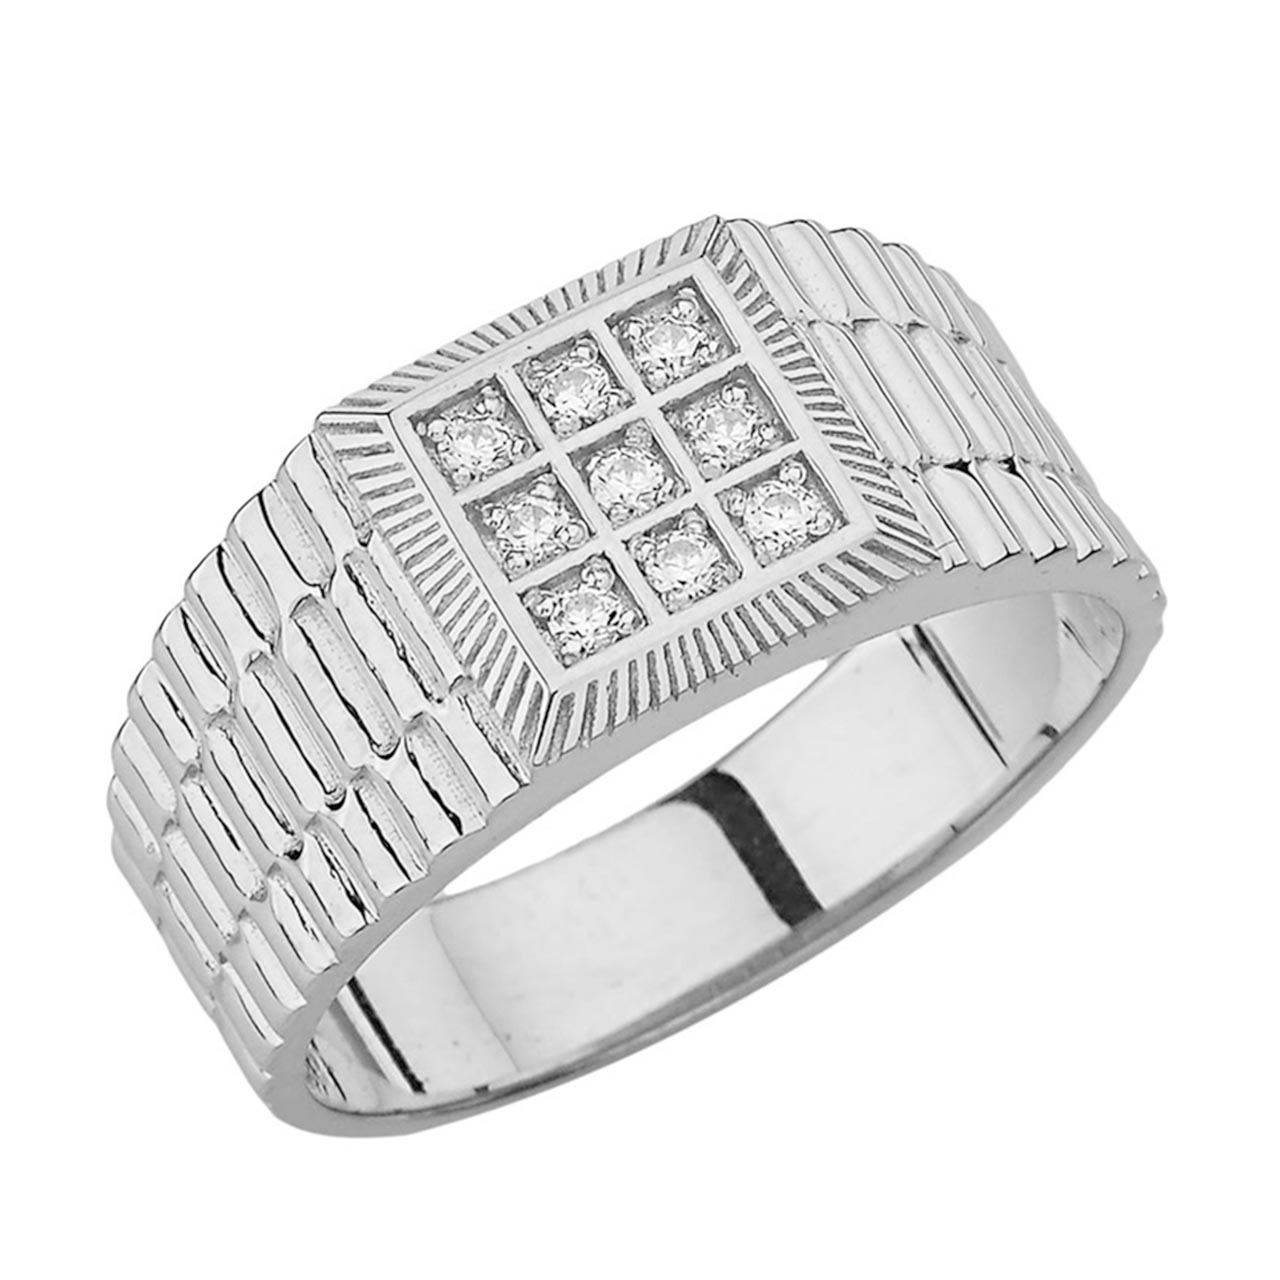 Men S 0 08ct Diamond Watchband Design Ring In Sterling Silver Gold Boutique